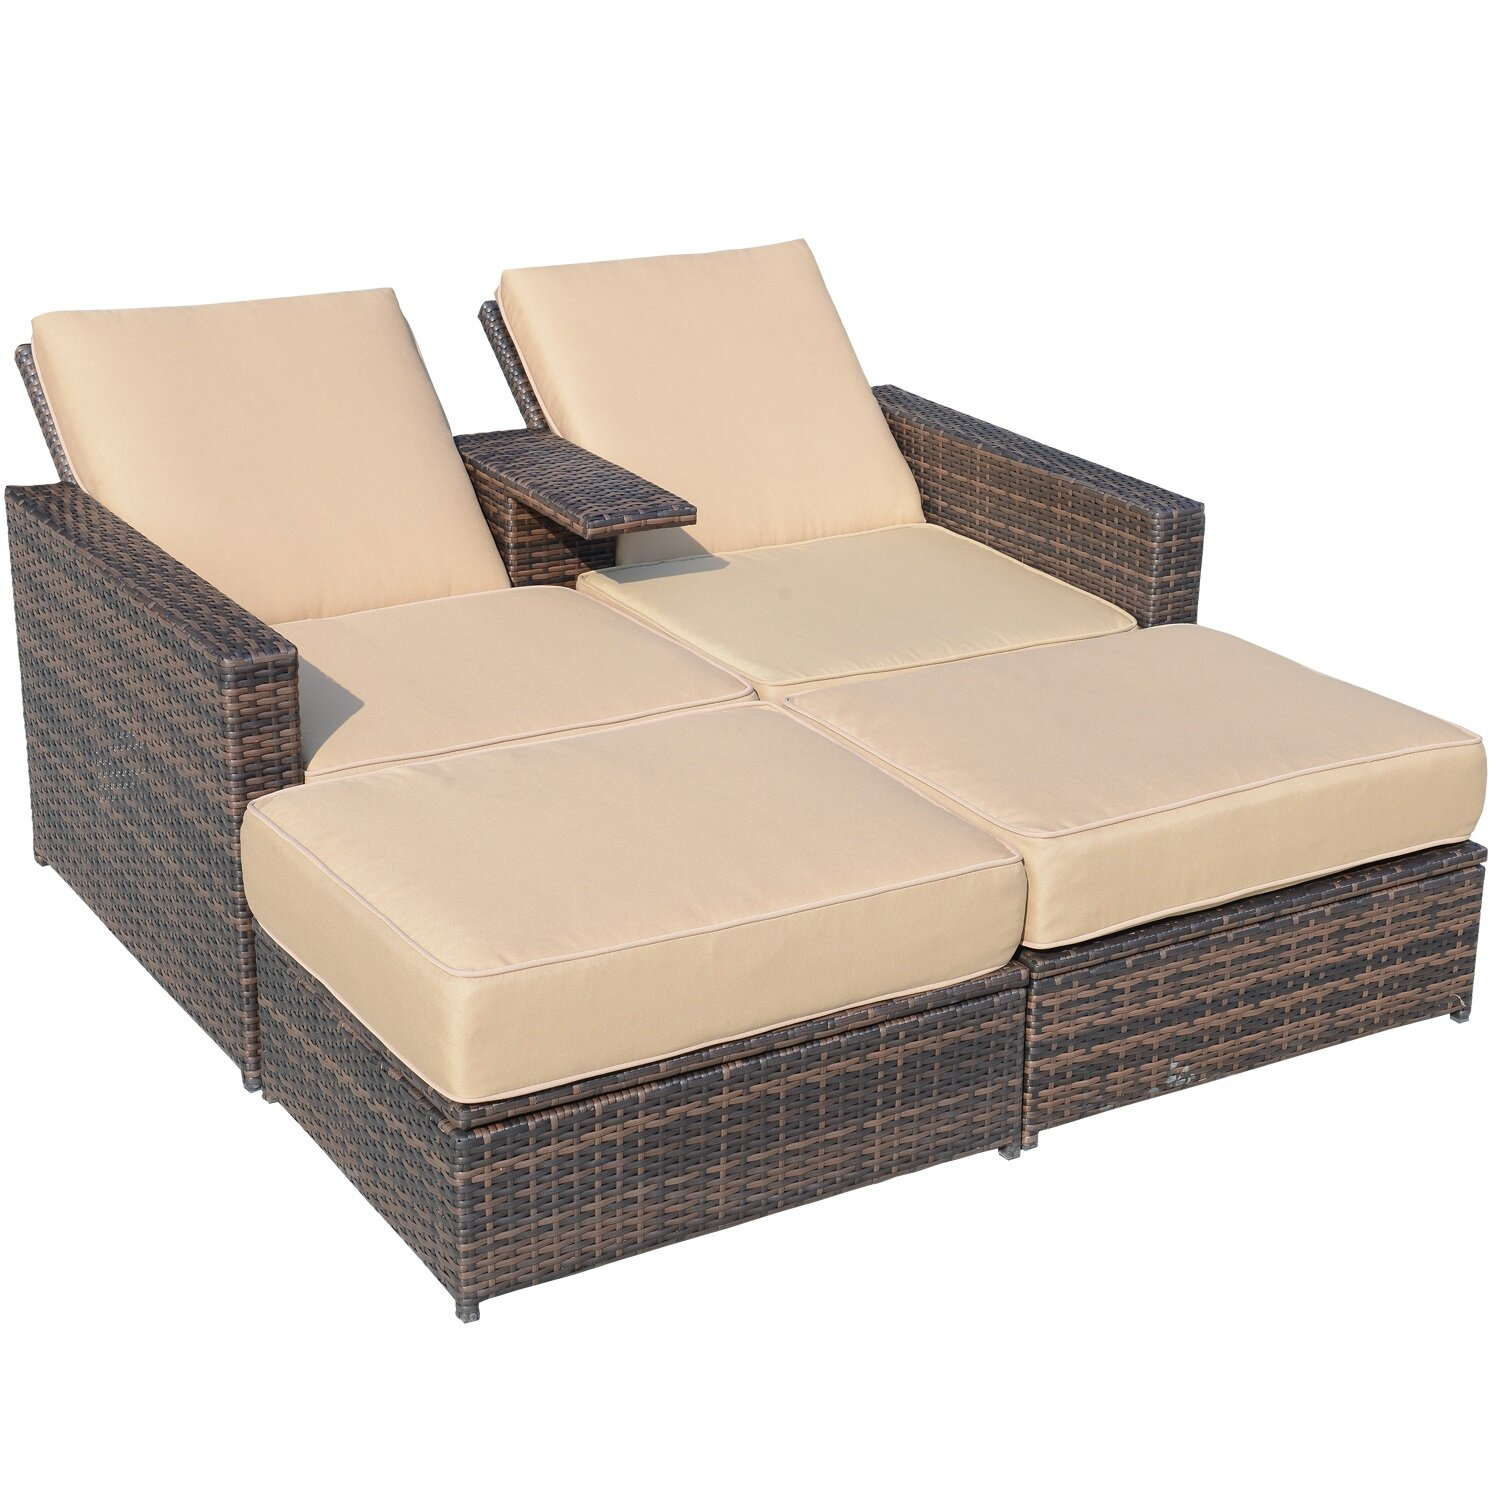 4 Piece Double Chaise Lounge with Cushion - Outdoor Lounge Chairs You'll Love Wayfair